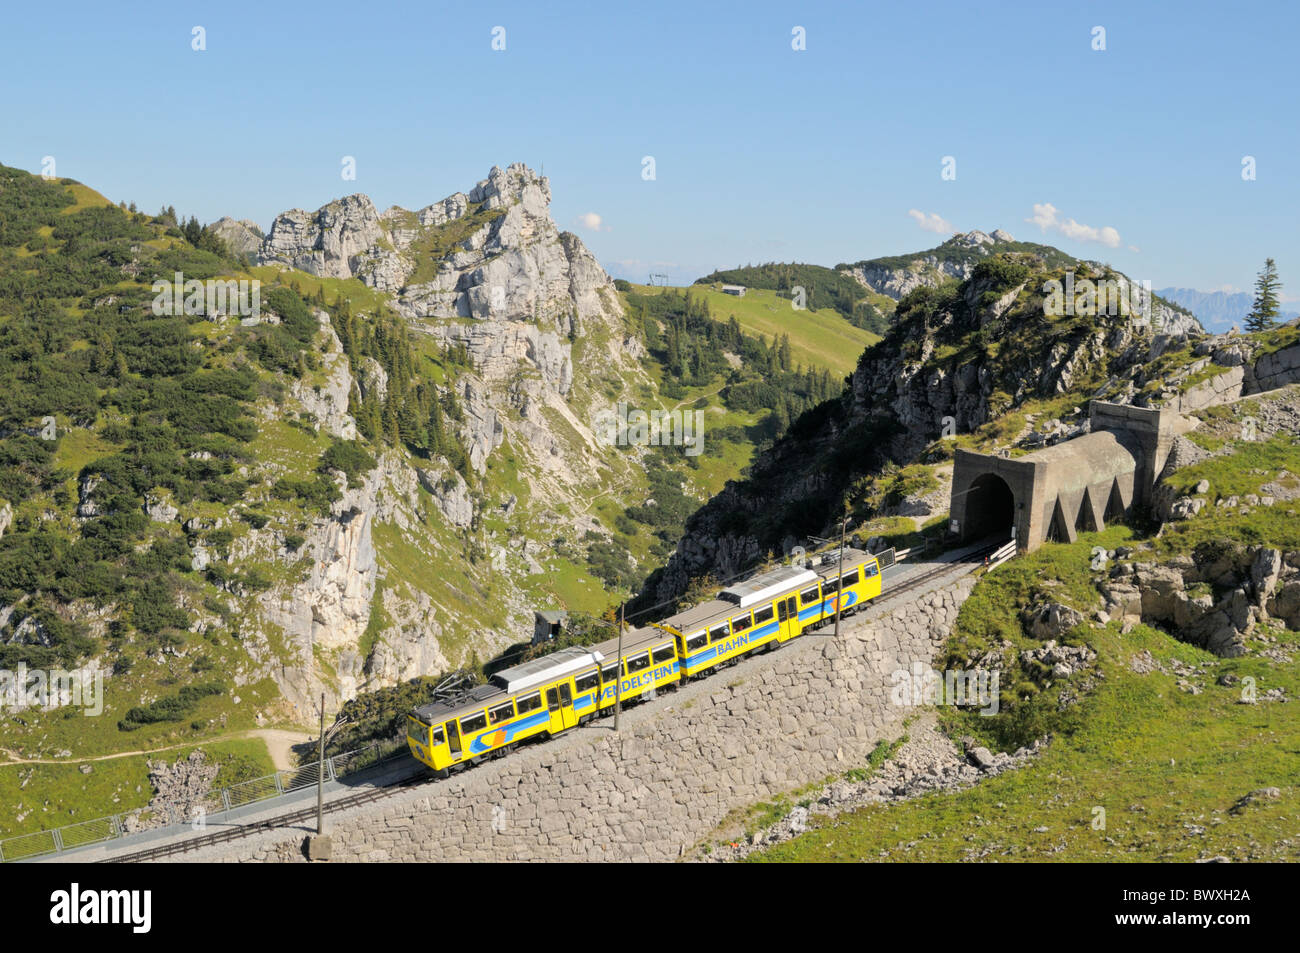 Uphill going train of the Wendelstein cog railroad just under the summit station, Bavarian alps, Germany - Stock Image